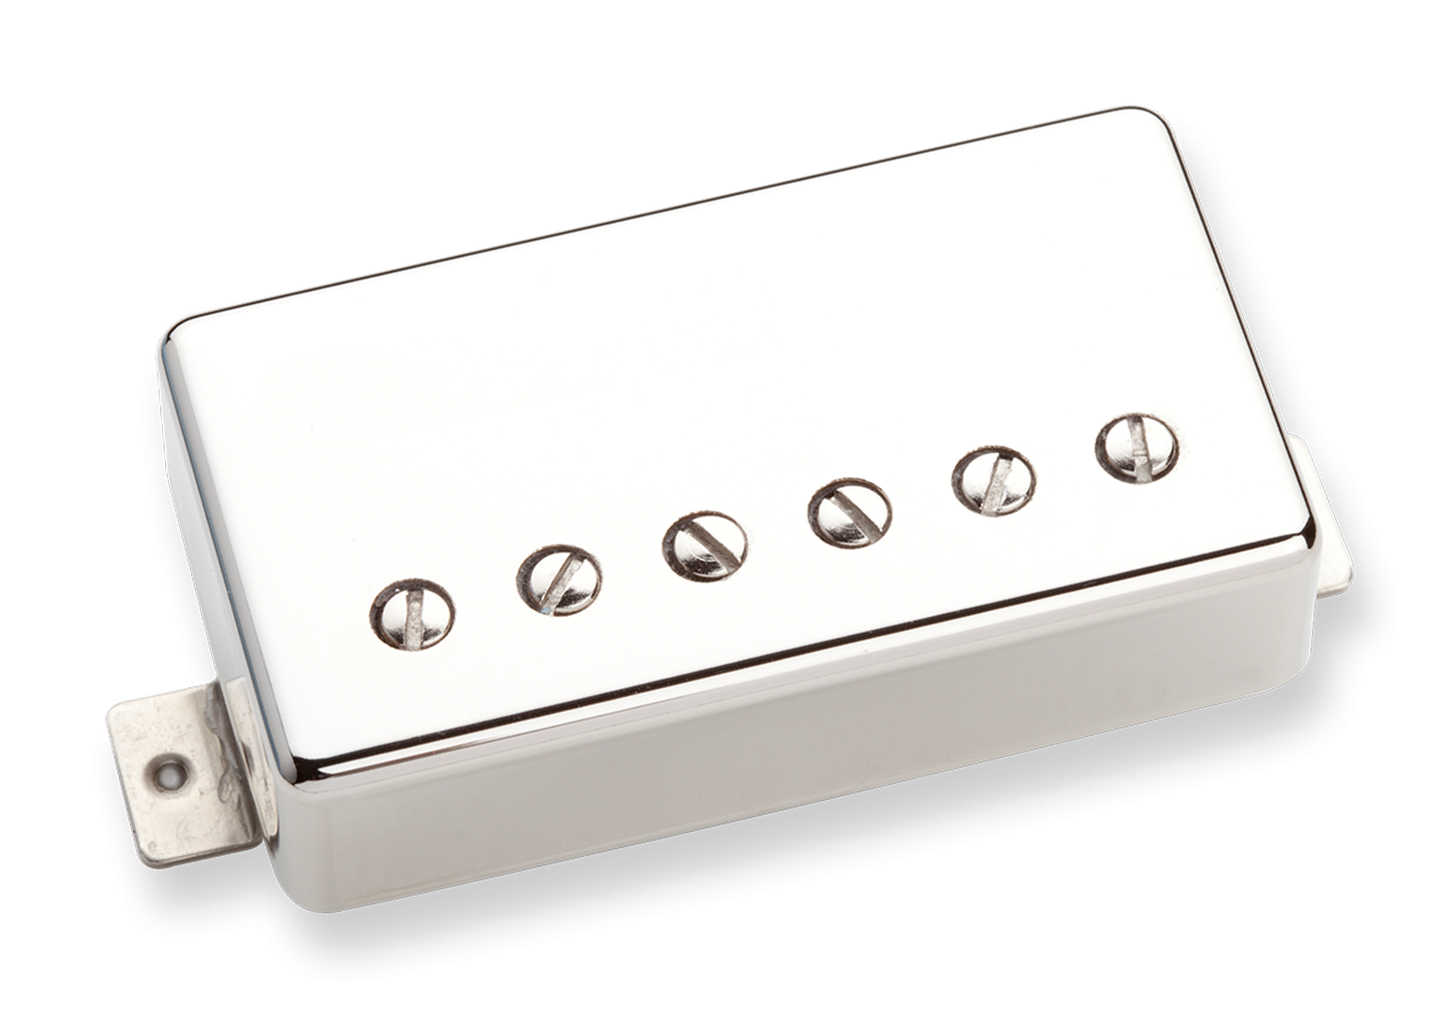 Seymour Duncan Whole Lotta Humbucker - SH-18B Bridge Nickel